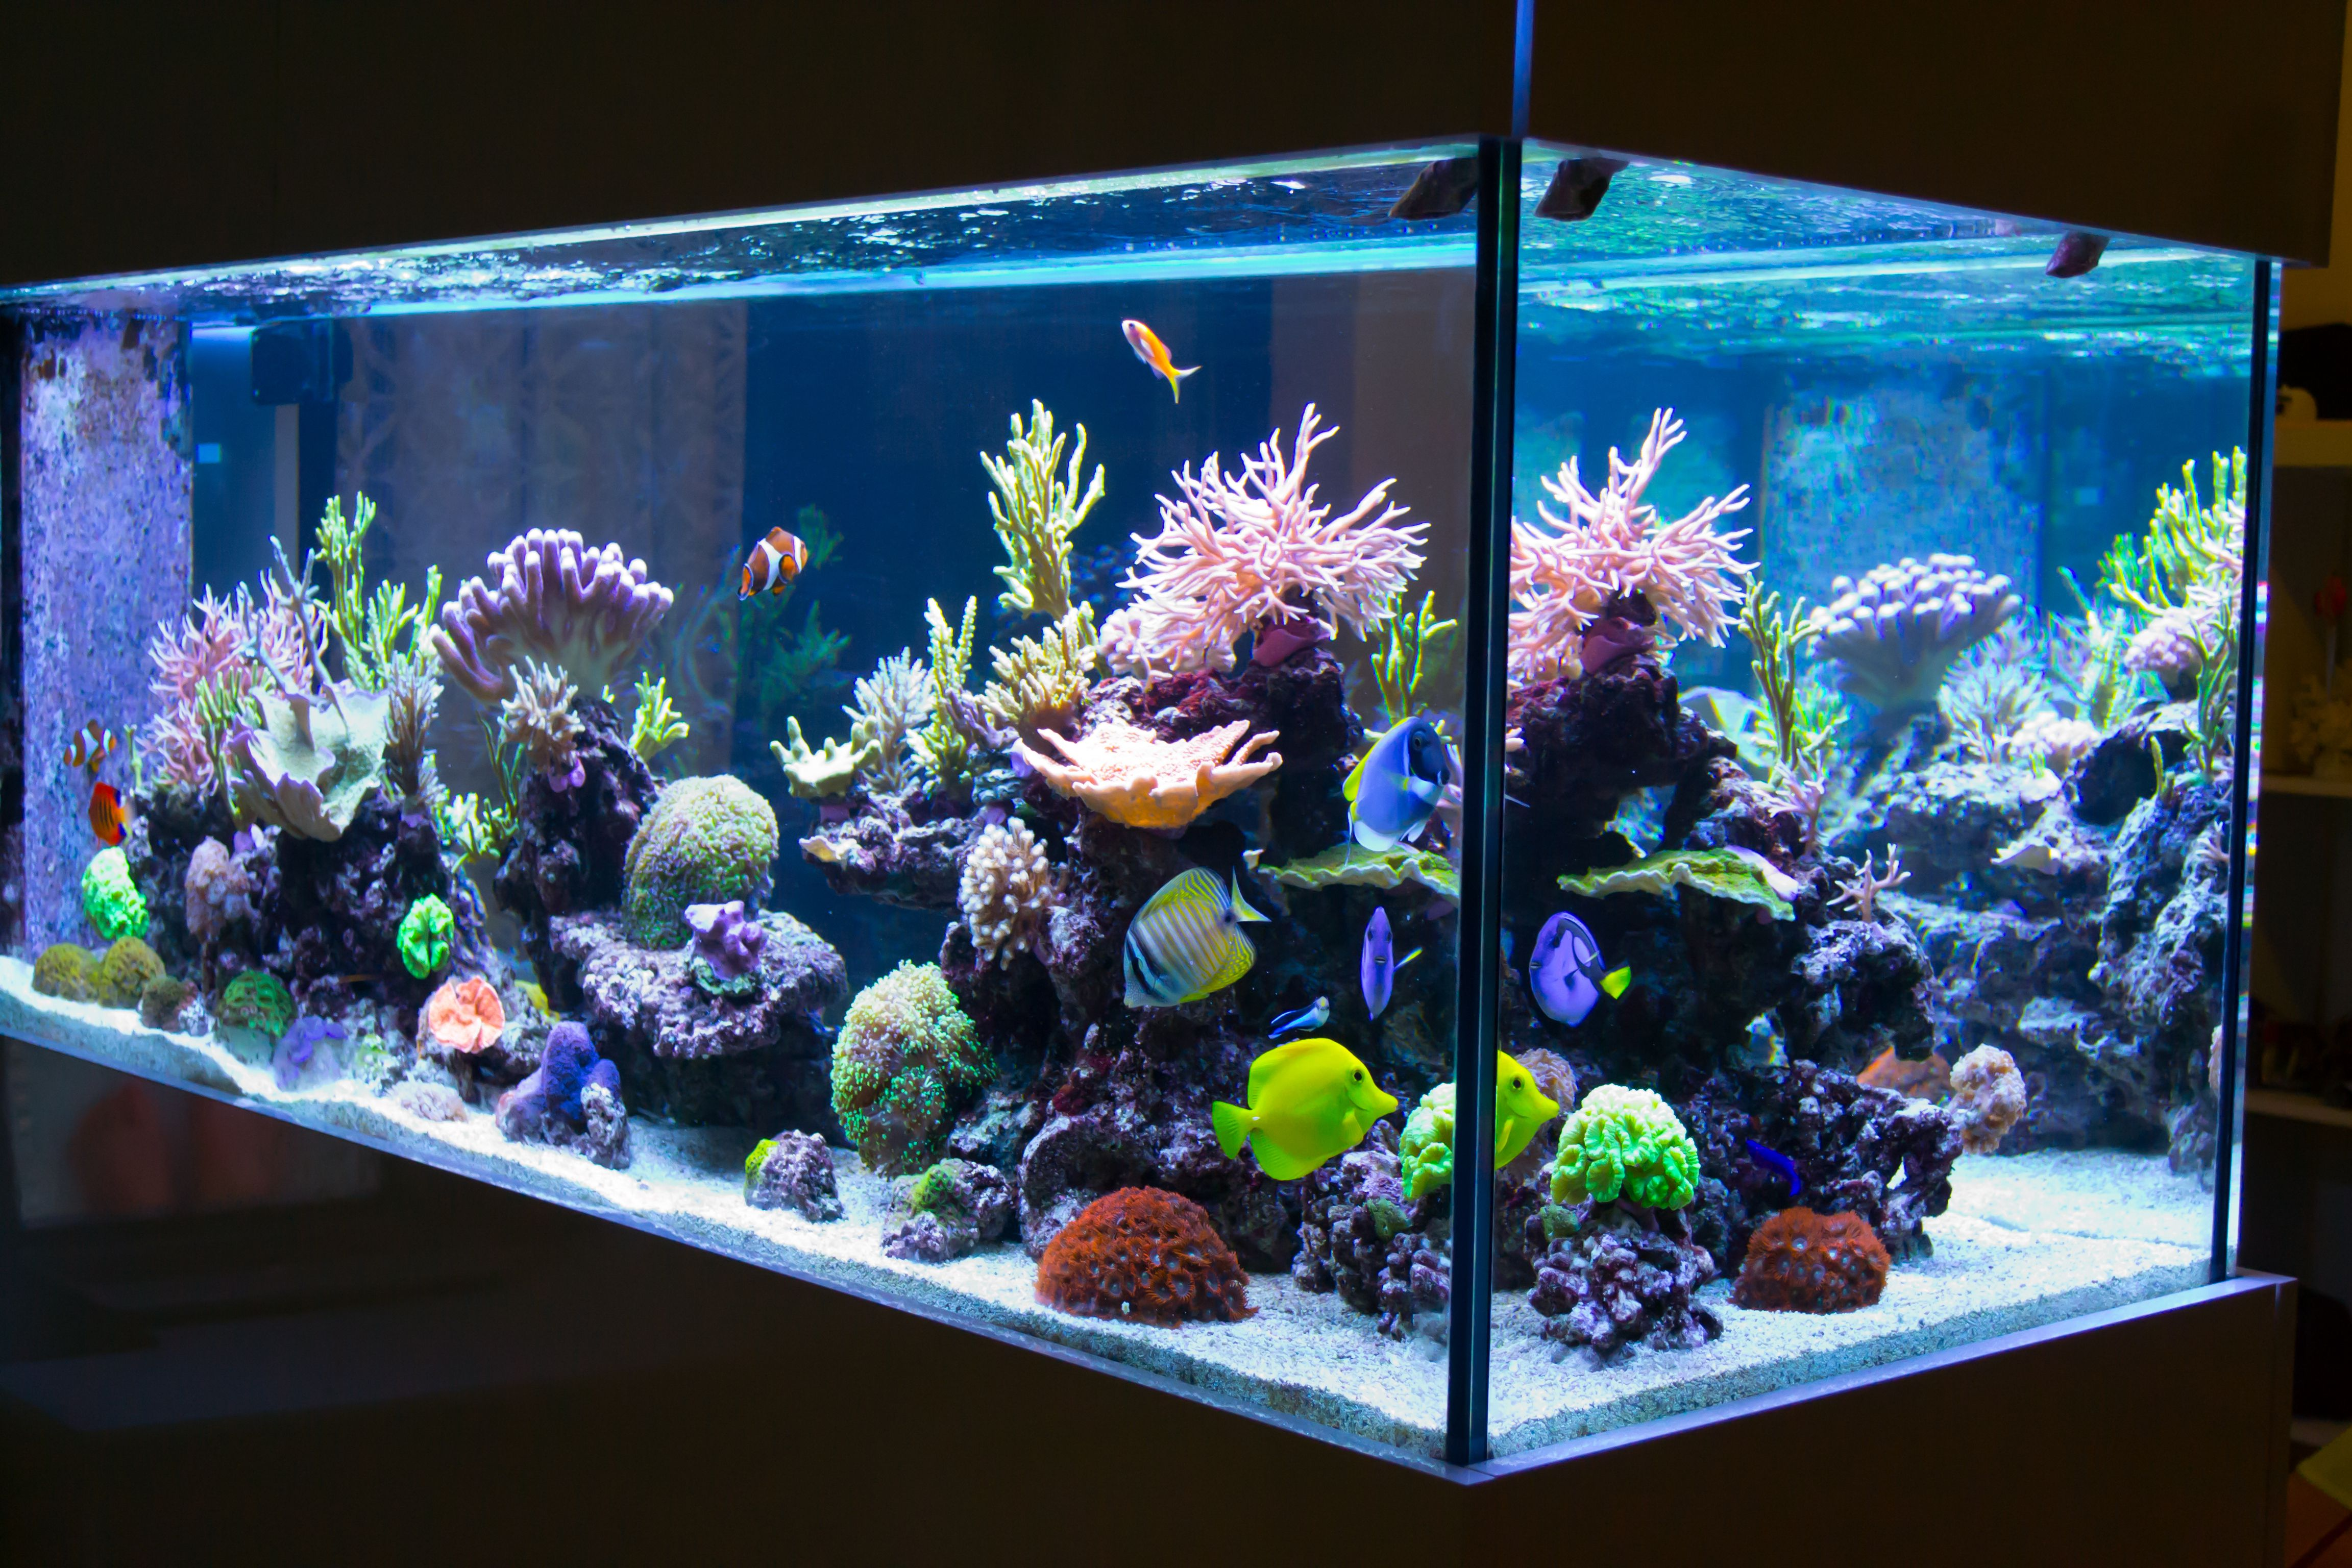 What Do I Feed My Corals in a Seawater Aquarium